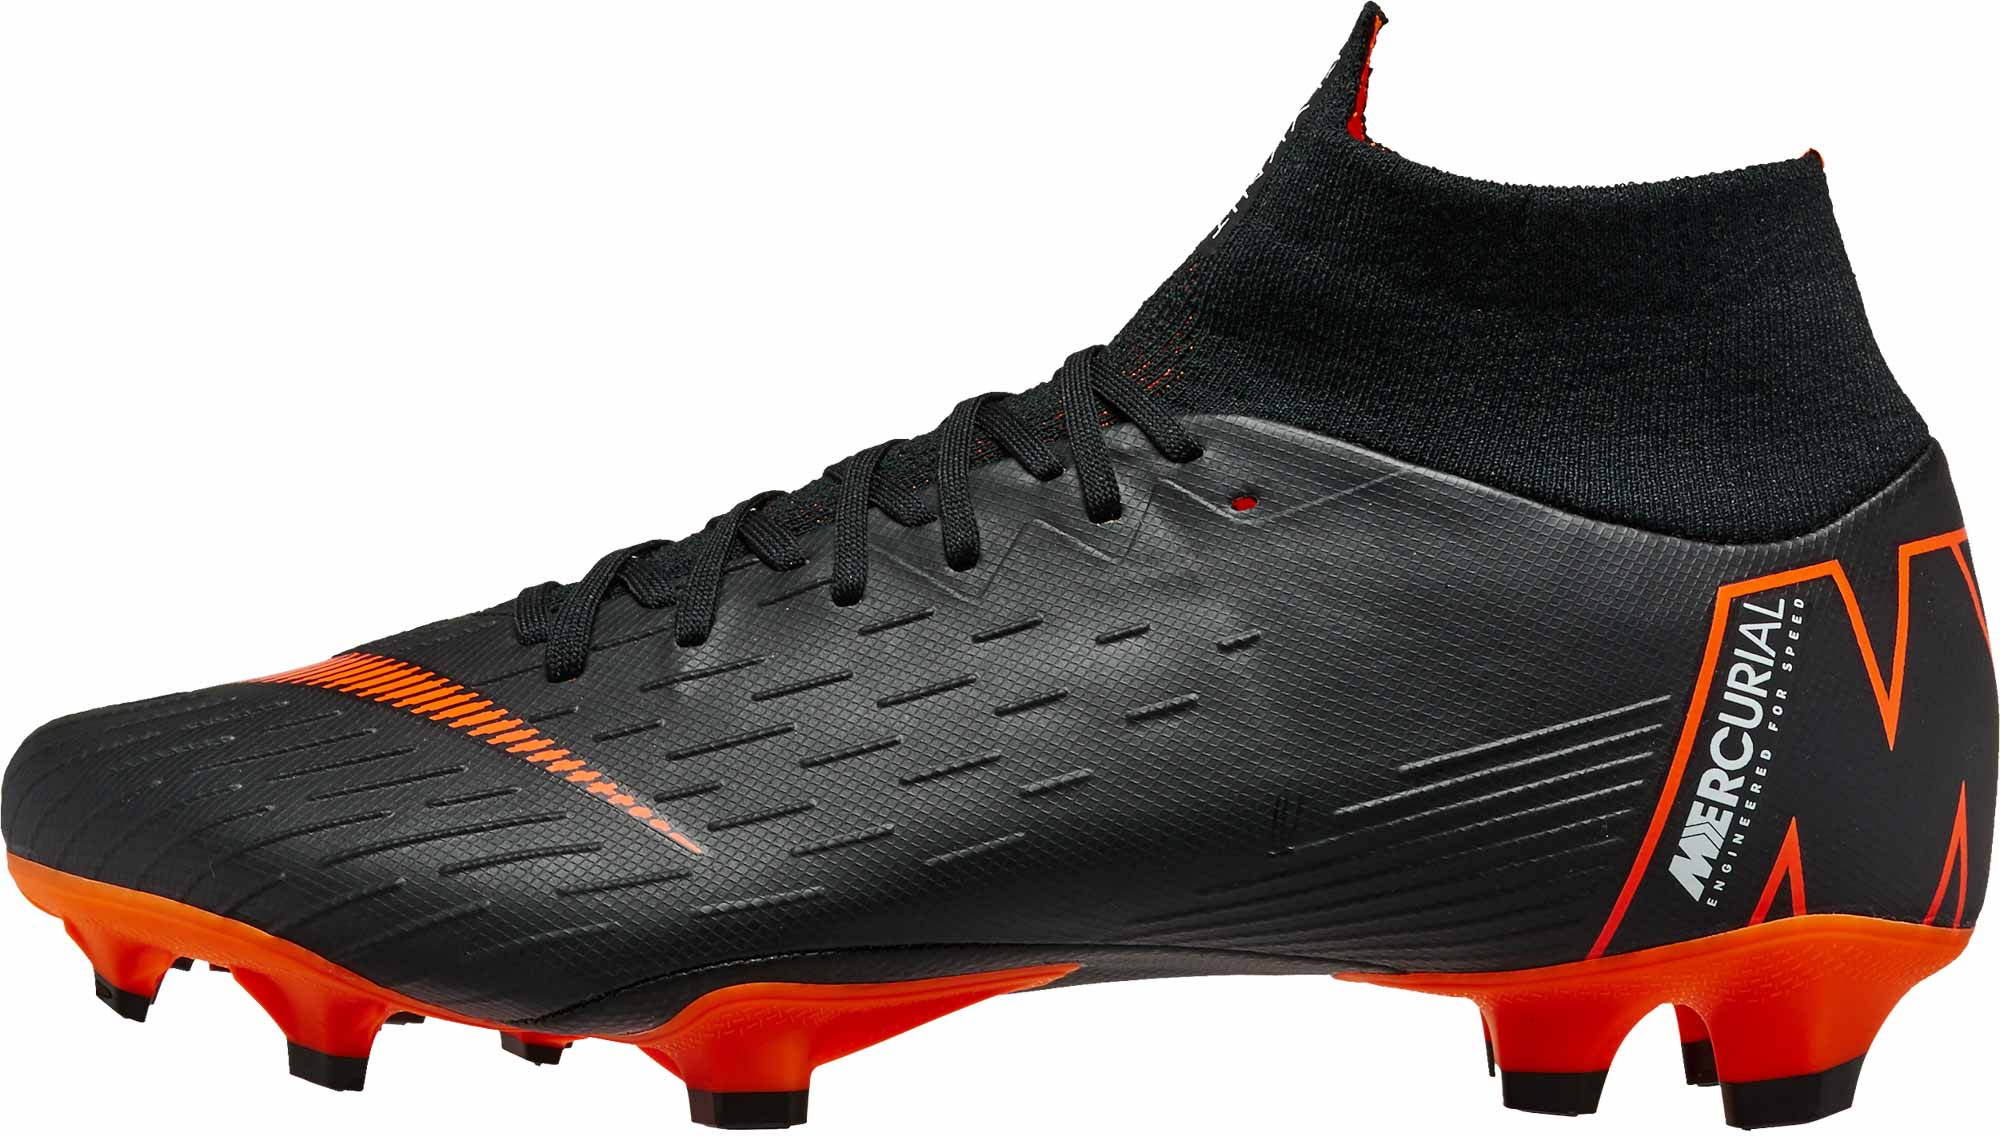 3133584e9d41 Reviewing the Nike Mercurial Superfly 6 Pro - The Instep